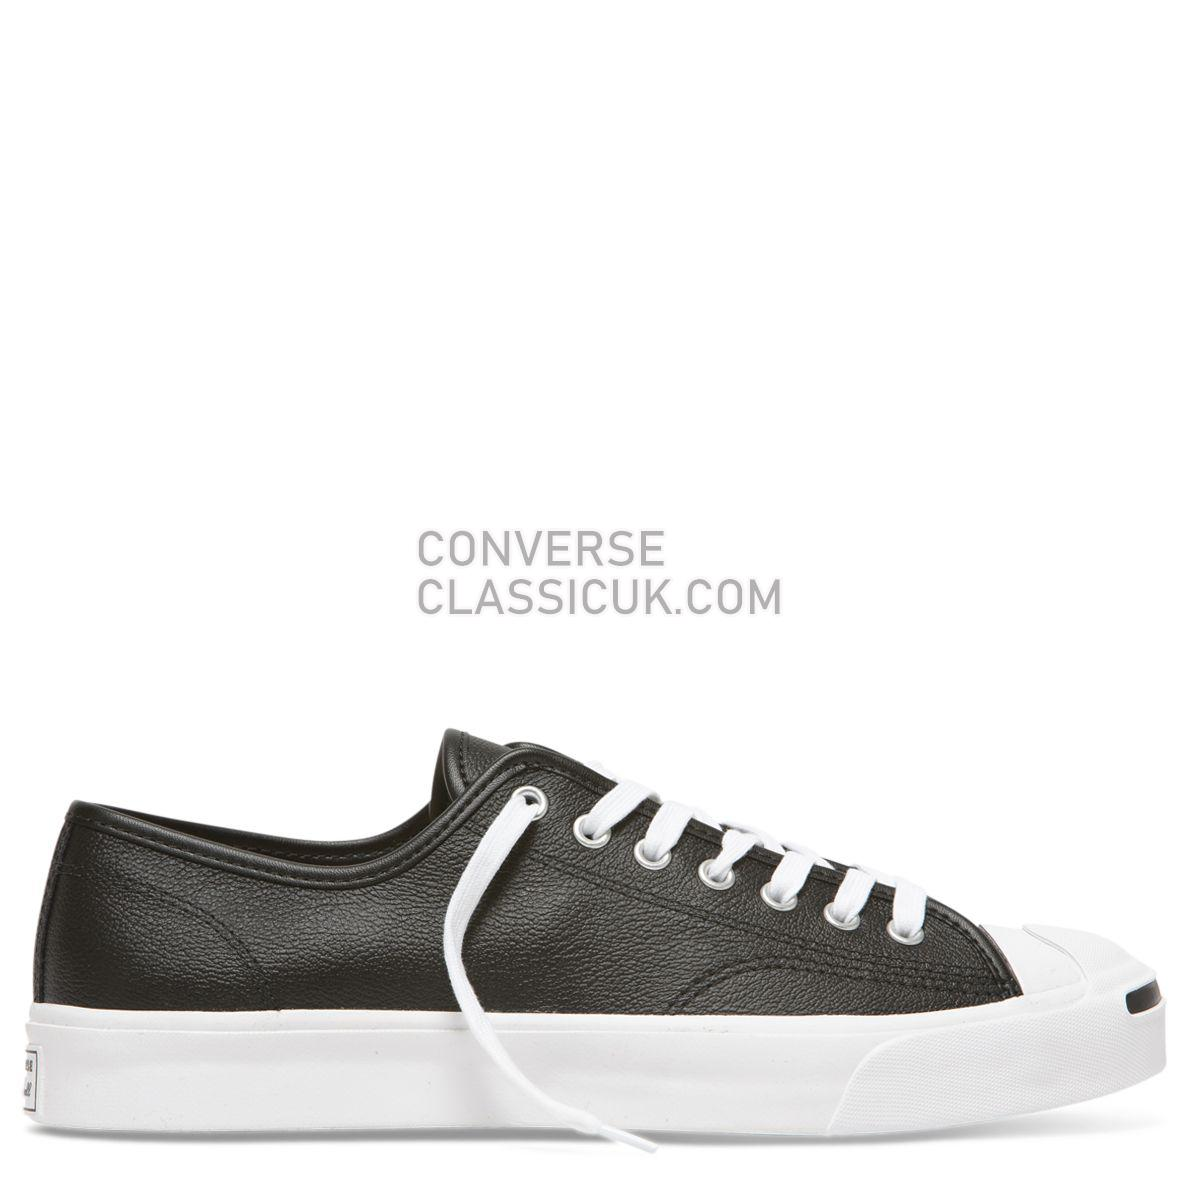 Converse Jack Purcell Foundational Leather Low Top Black Mens 164224 Black/White/White Shoes